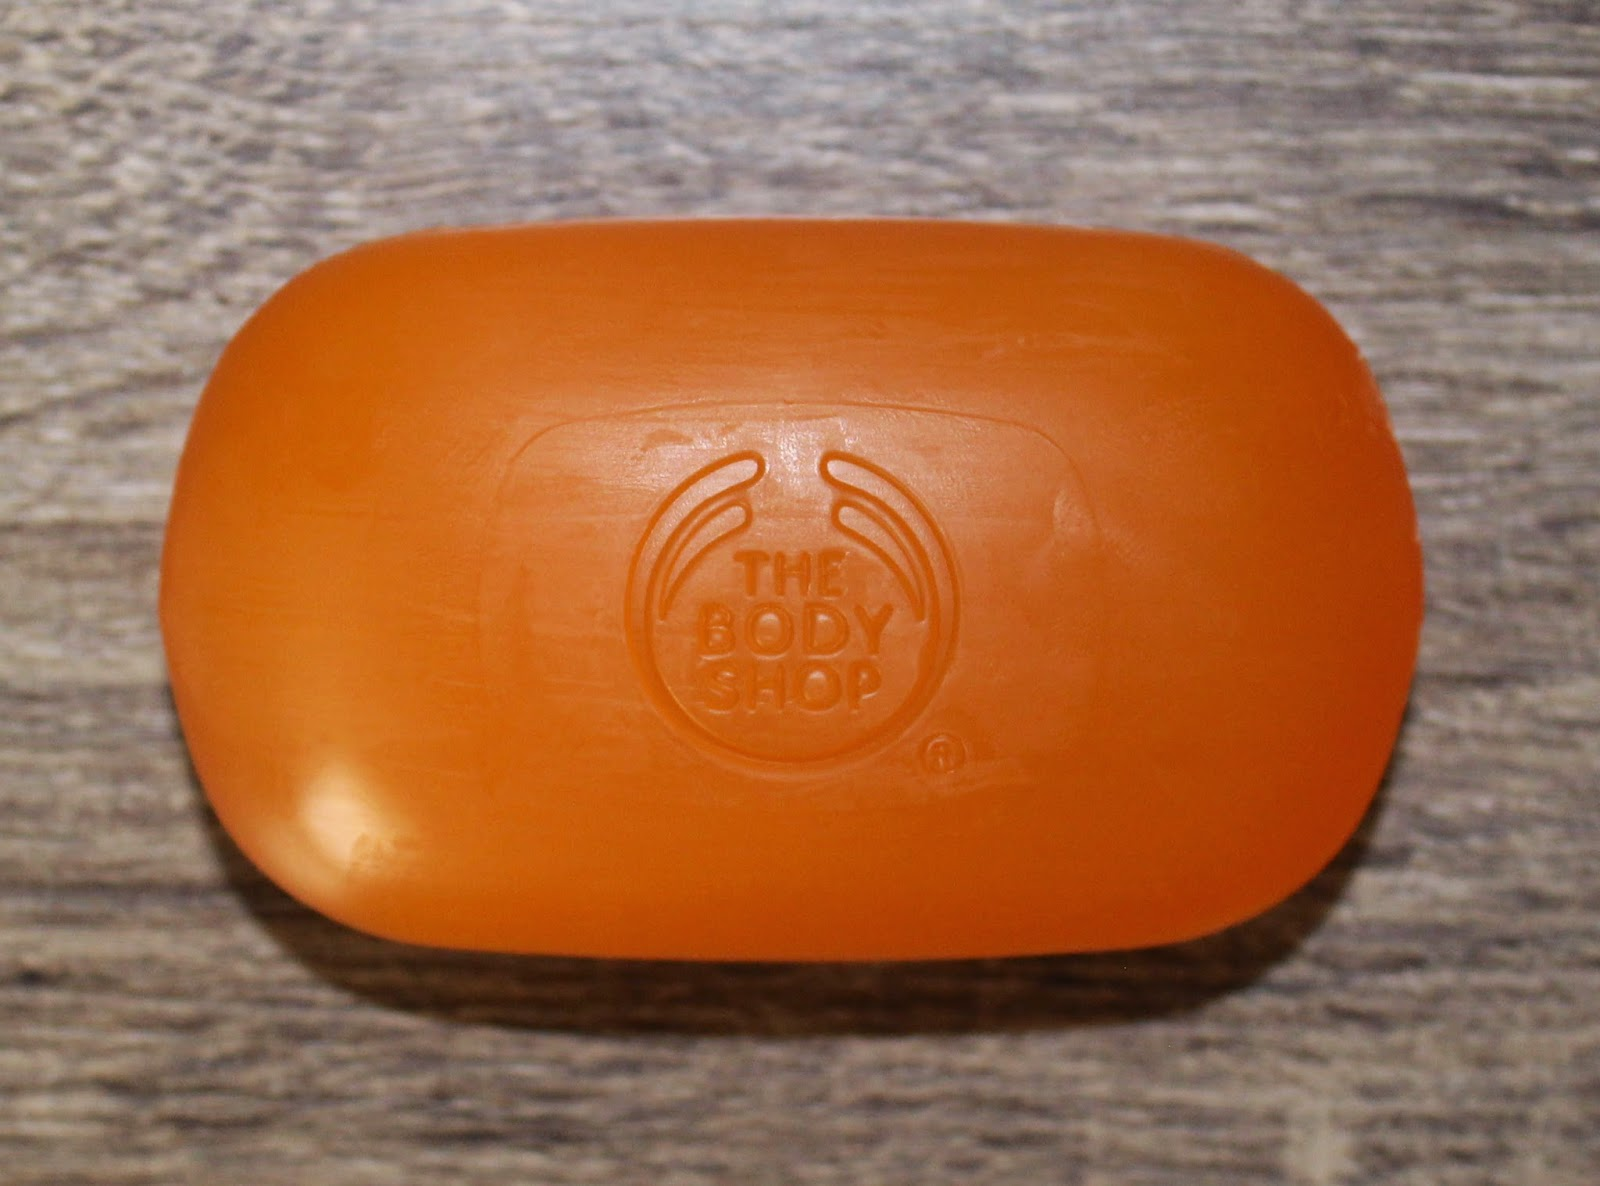 The Body Shop Satsuma Soap